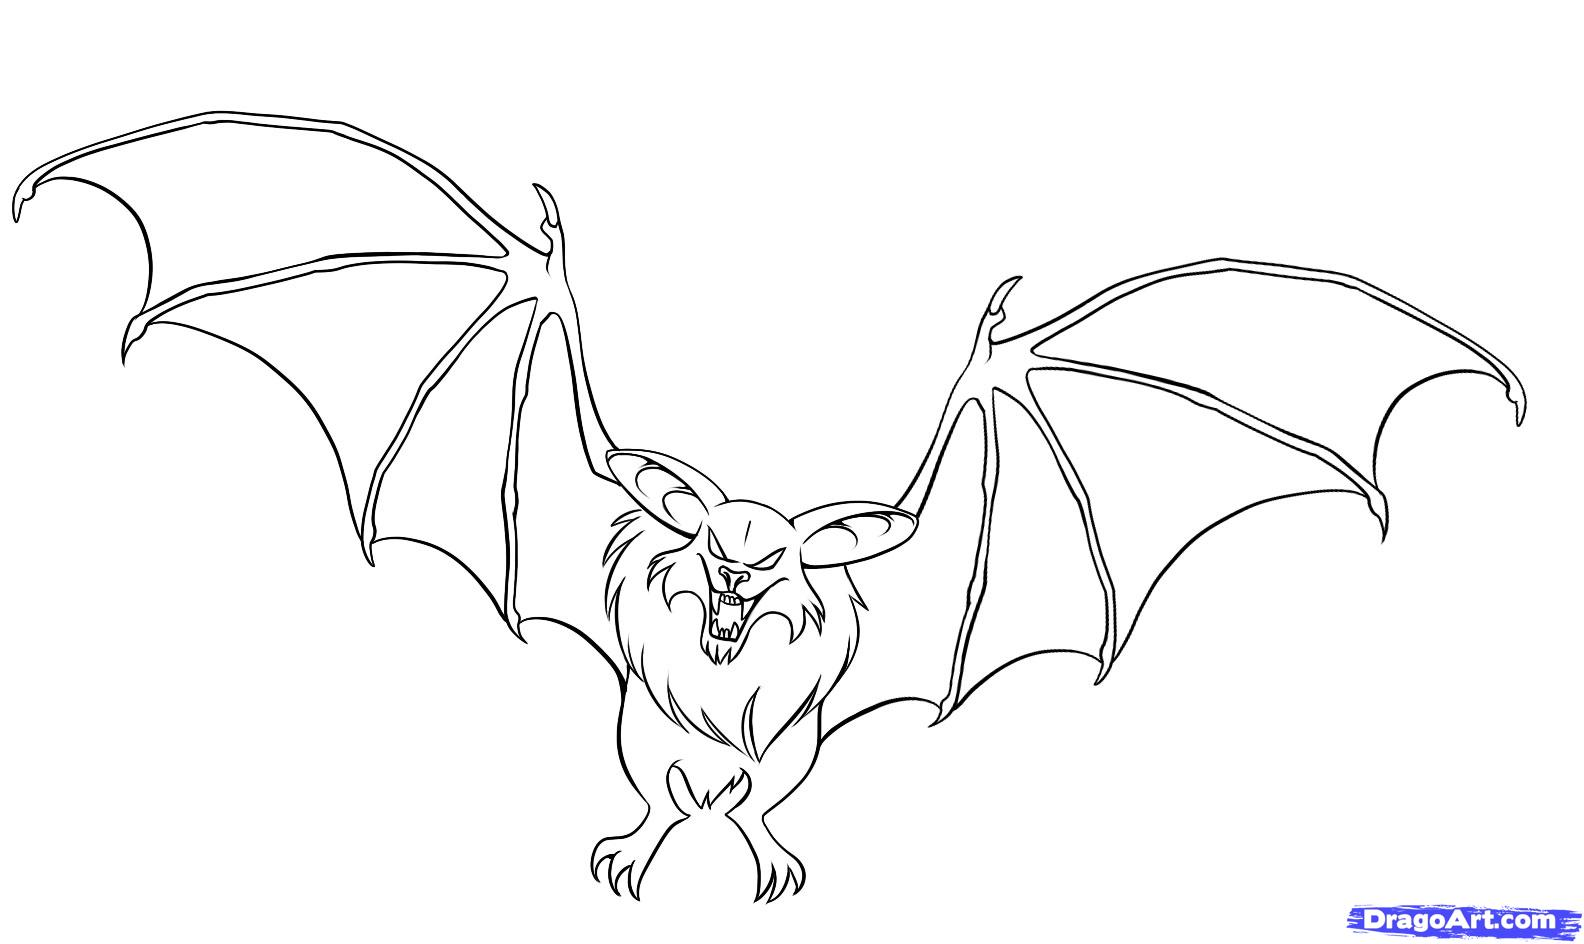 Drawn bat Bat an Anime to Step